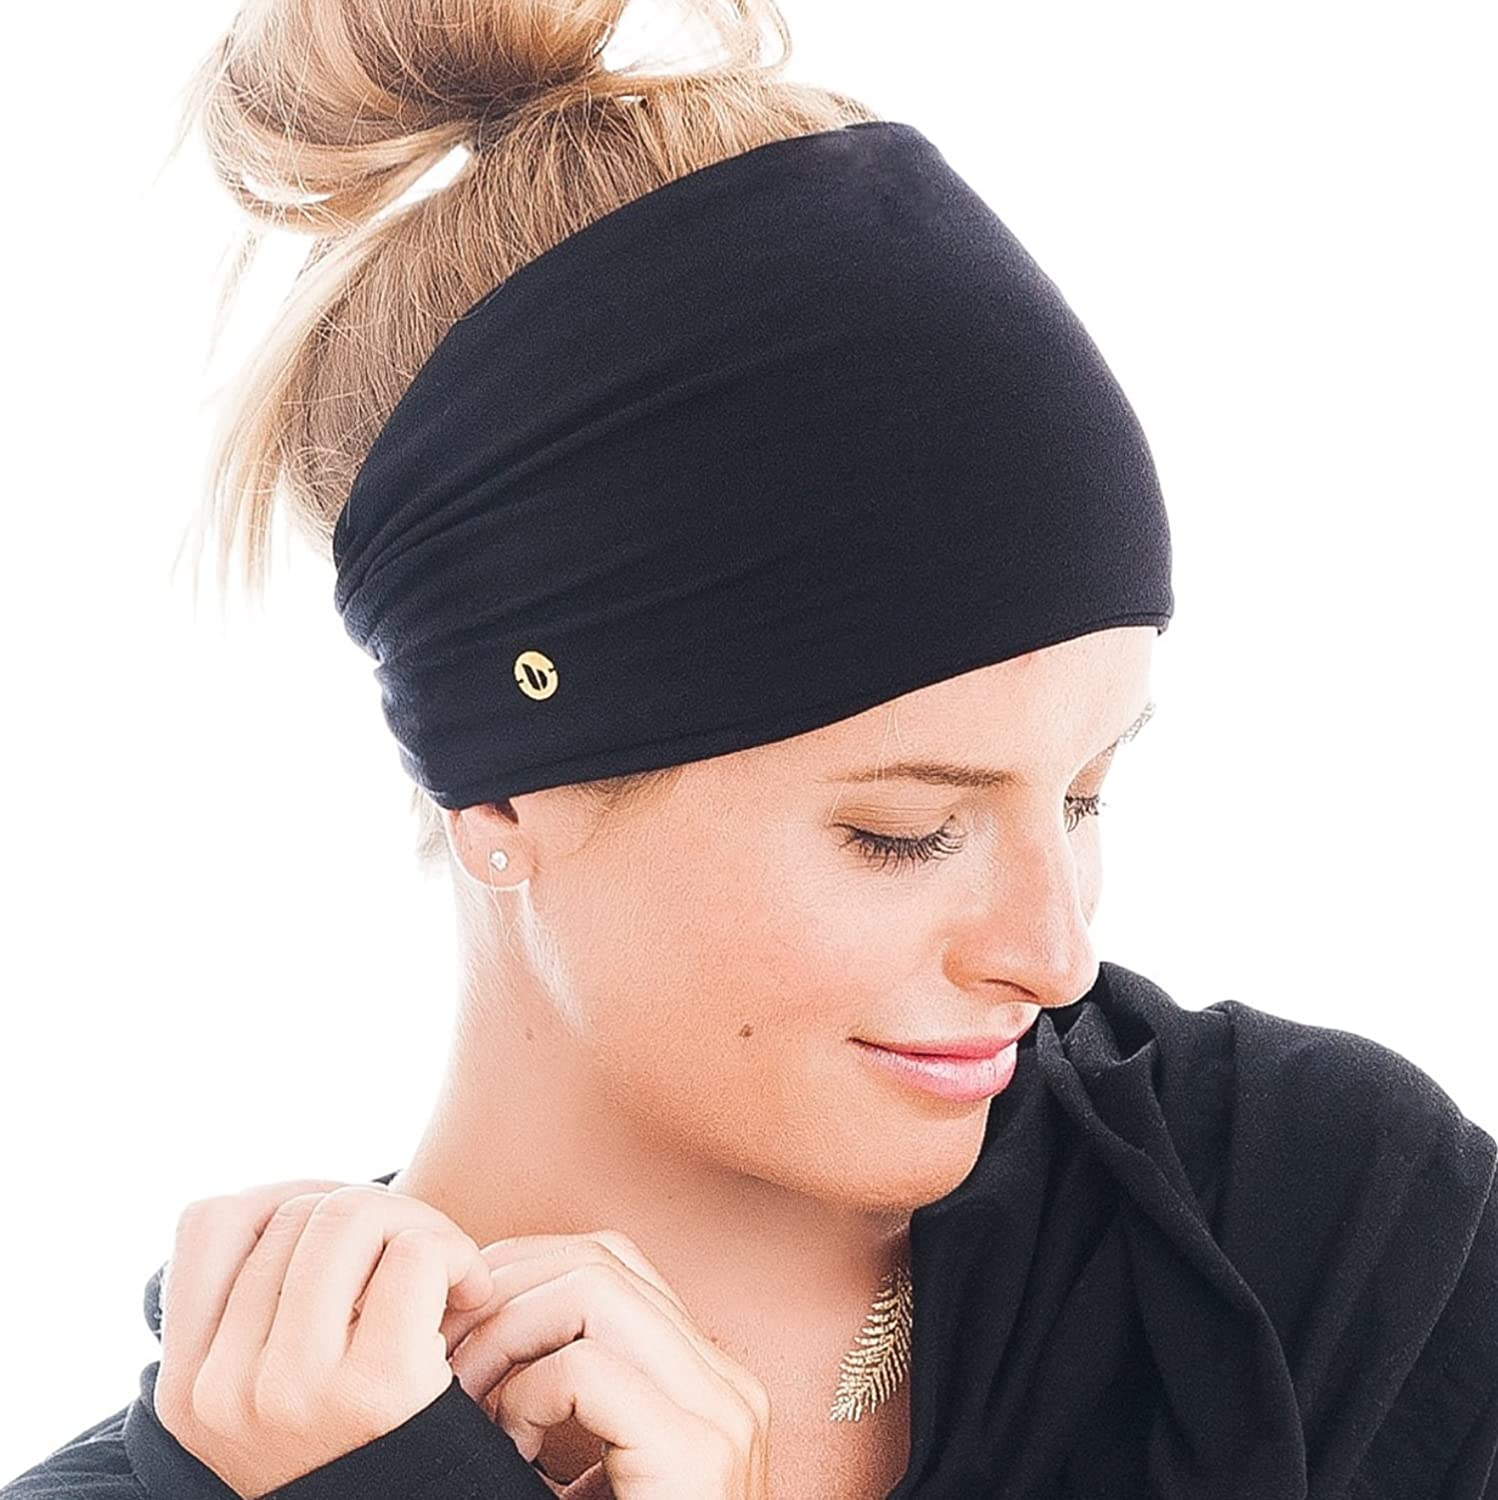 BLOM Original Headbands For Women. Multi Style Design for Yoga Fashion Workout Gym Running Athletic Travel. Wear Wide Turban Thick Knotted. Comfort Stretch Versatility. Ethically Made in Bali. (Black): Clothing